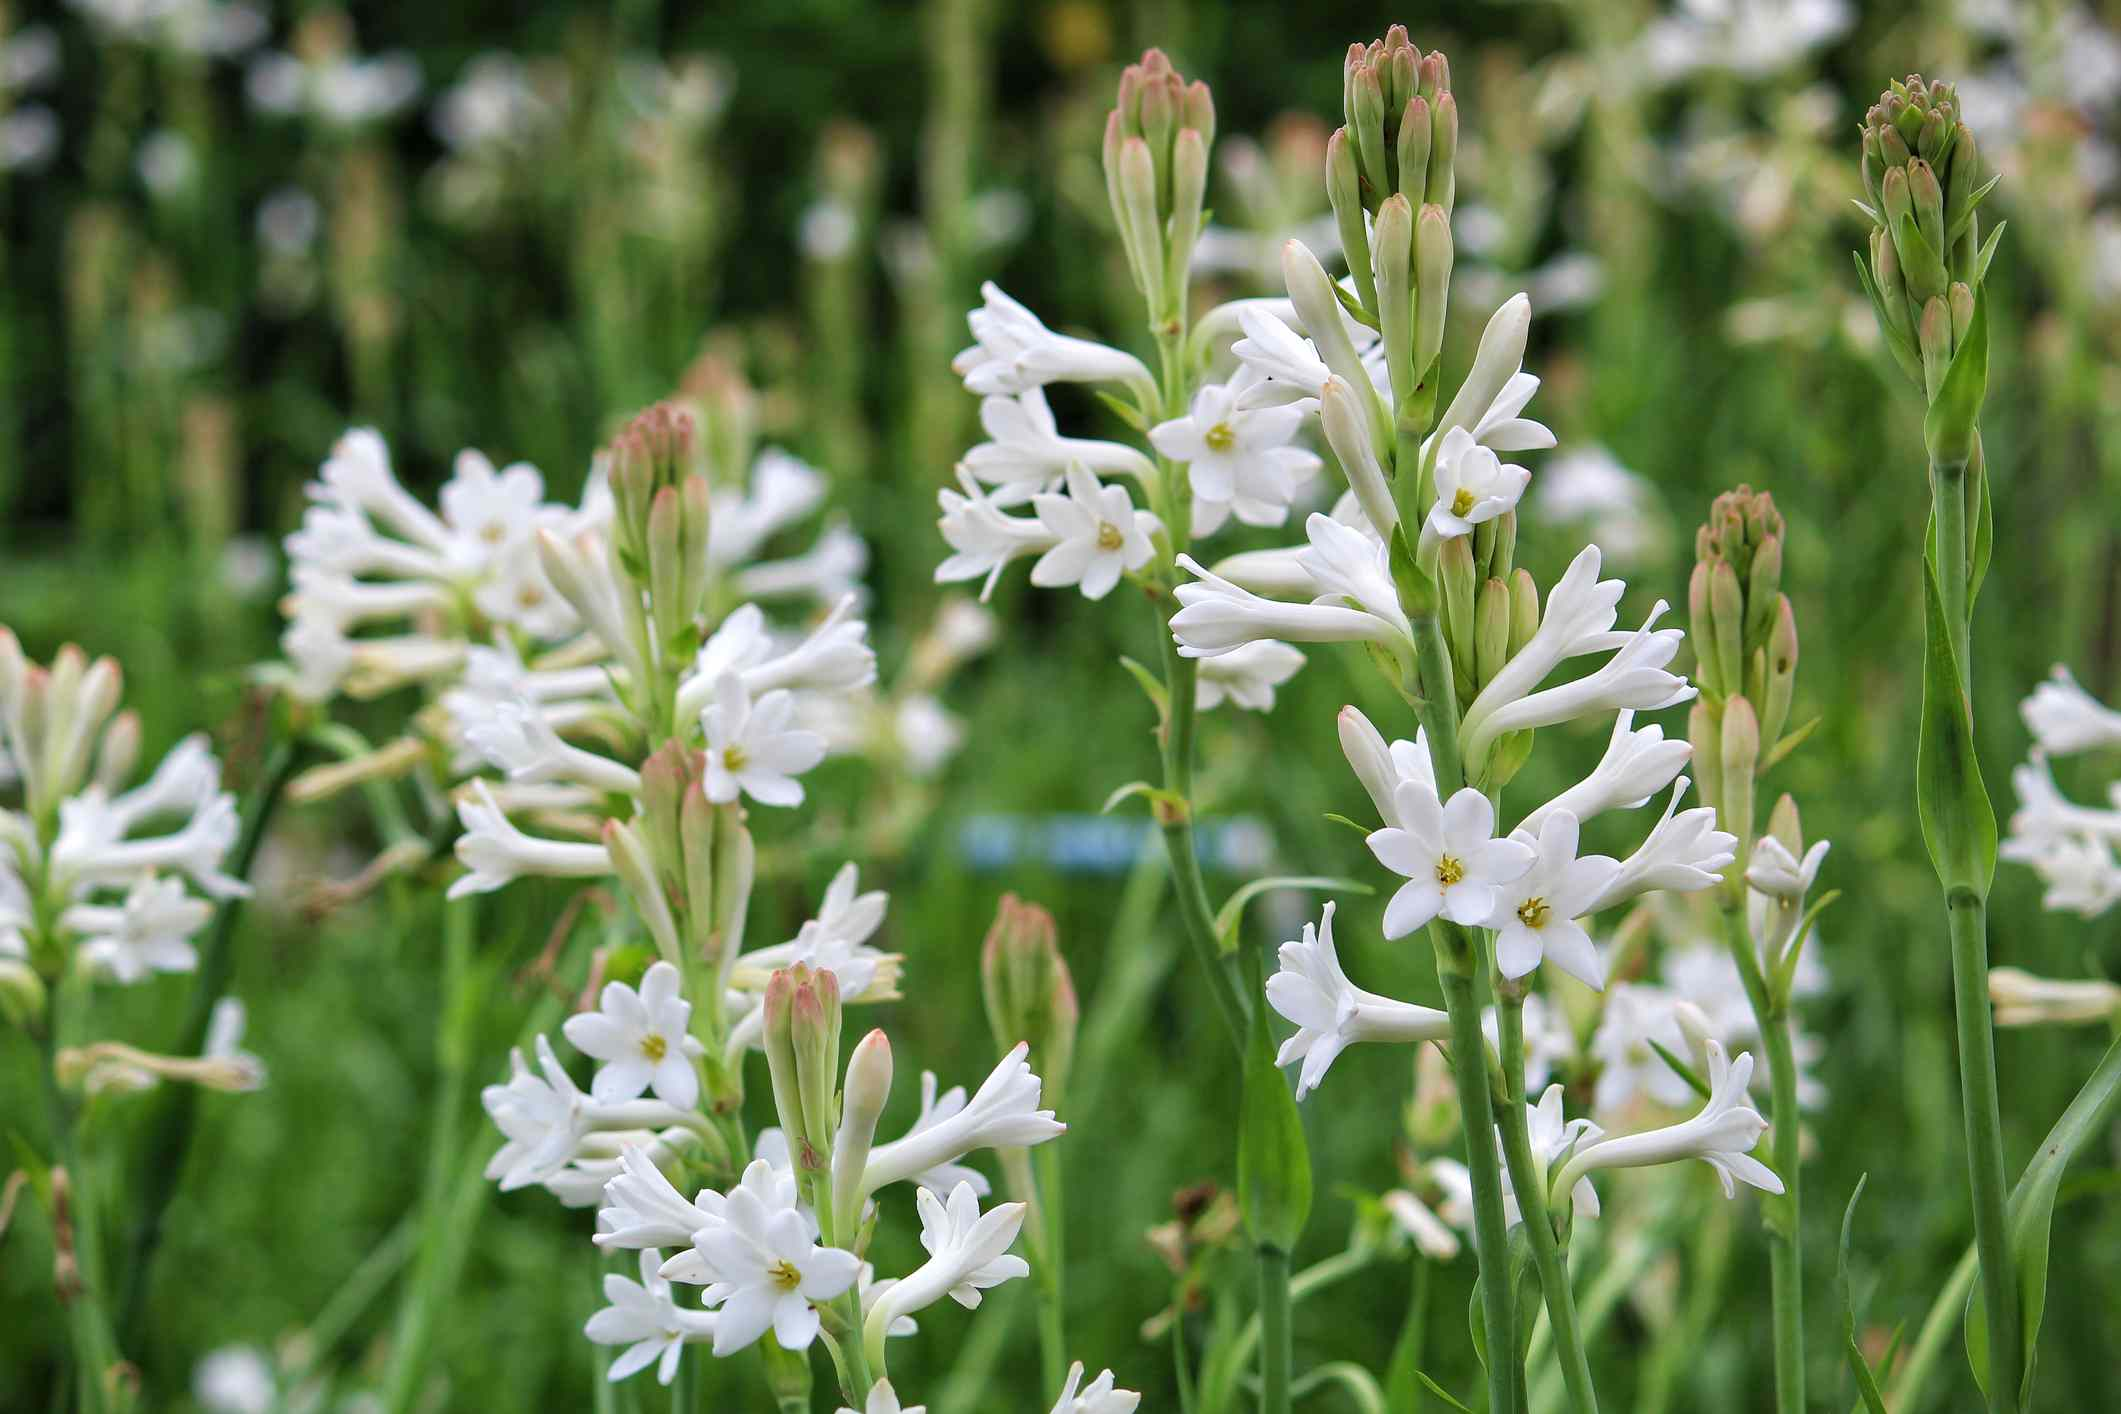 white tuberose flowers with green stems blooming in a field